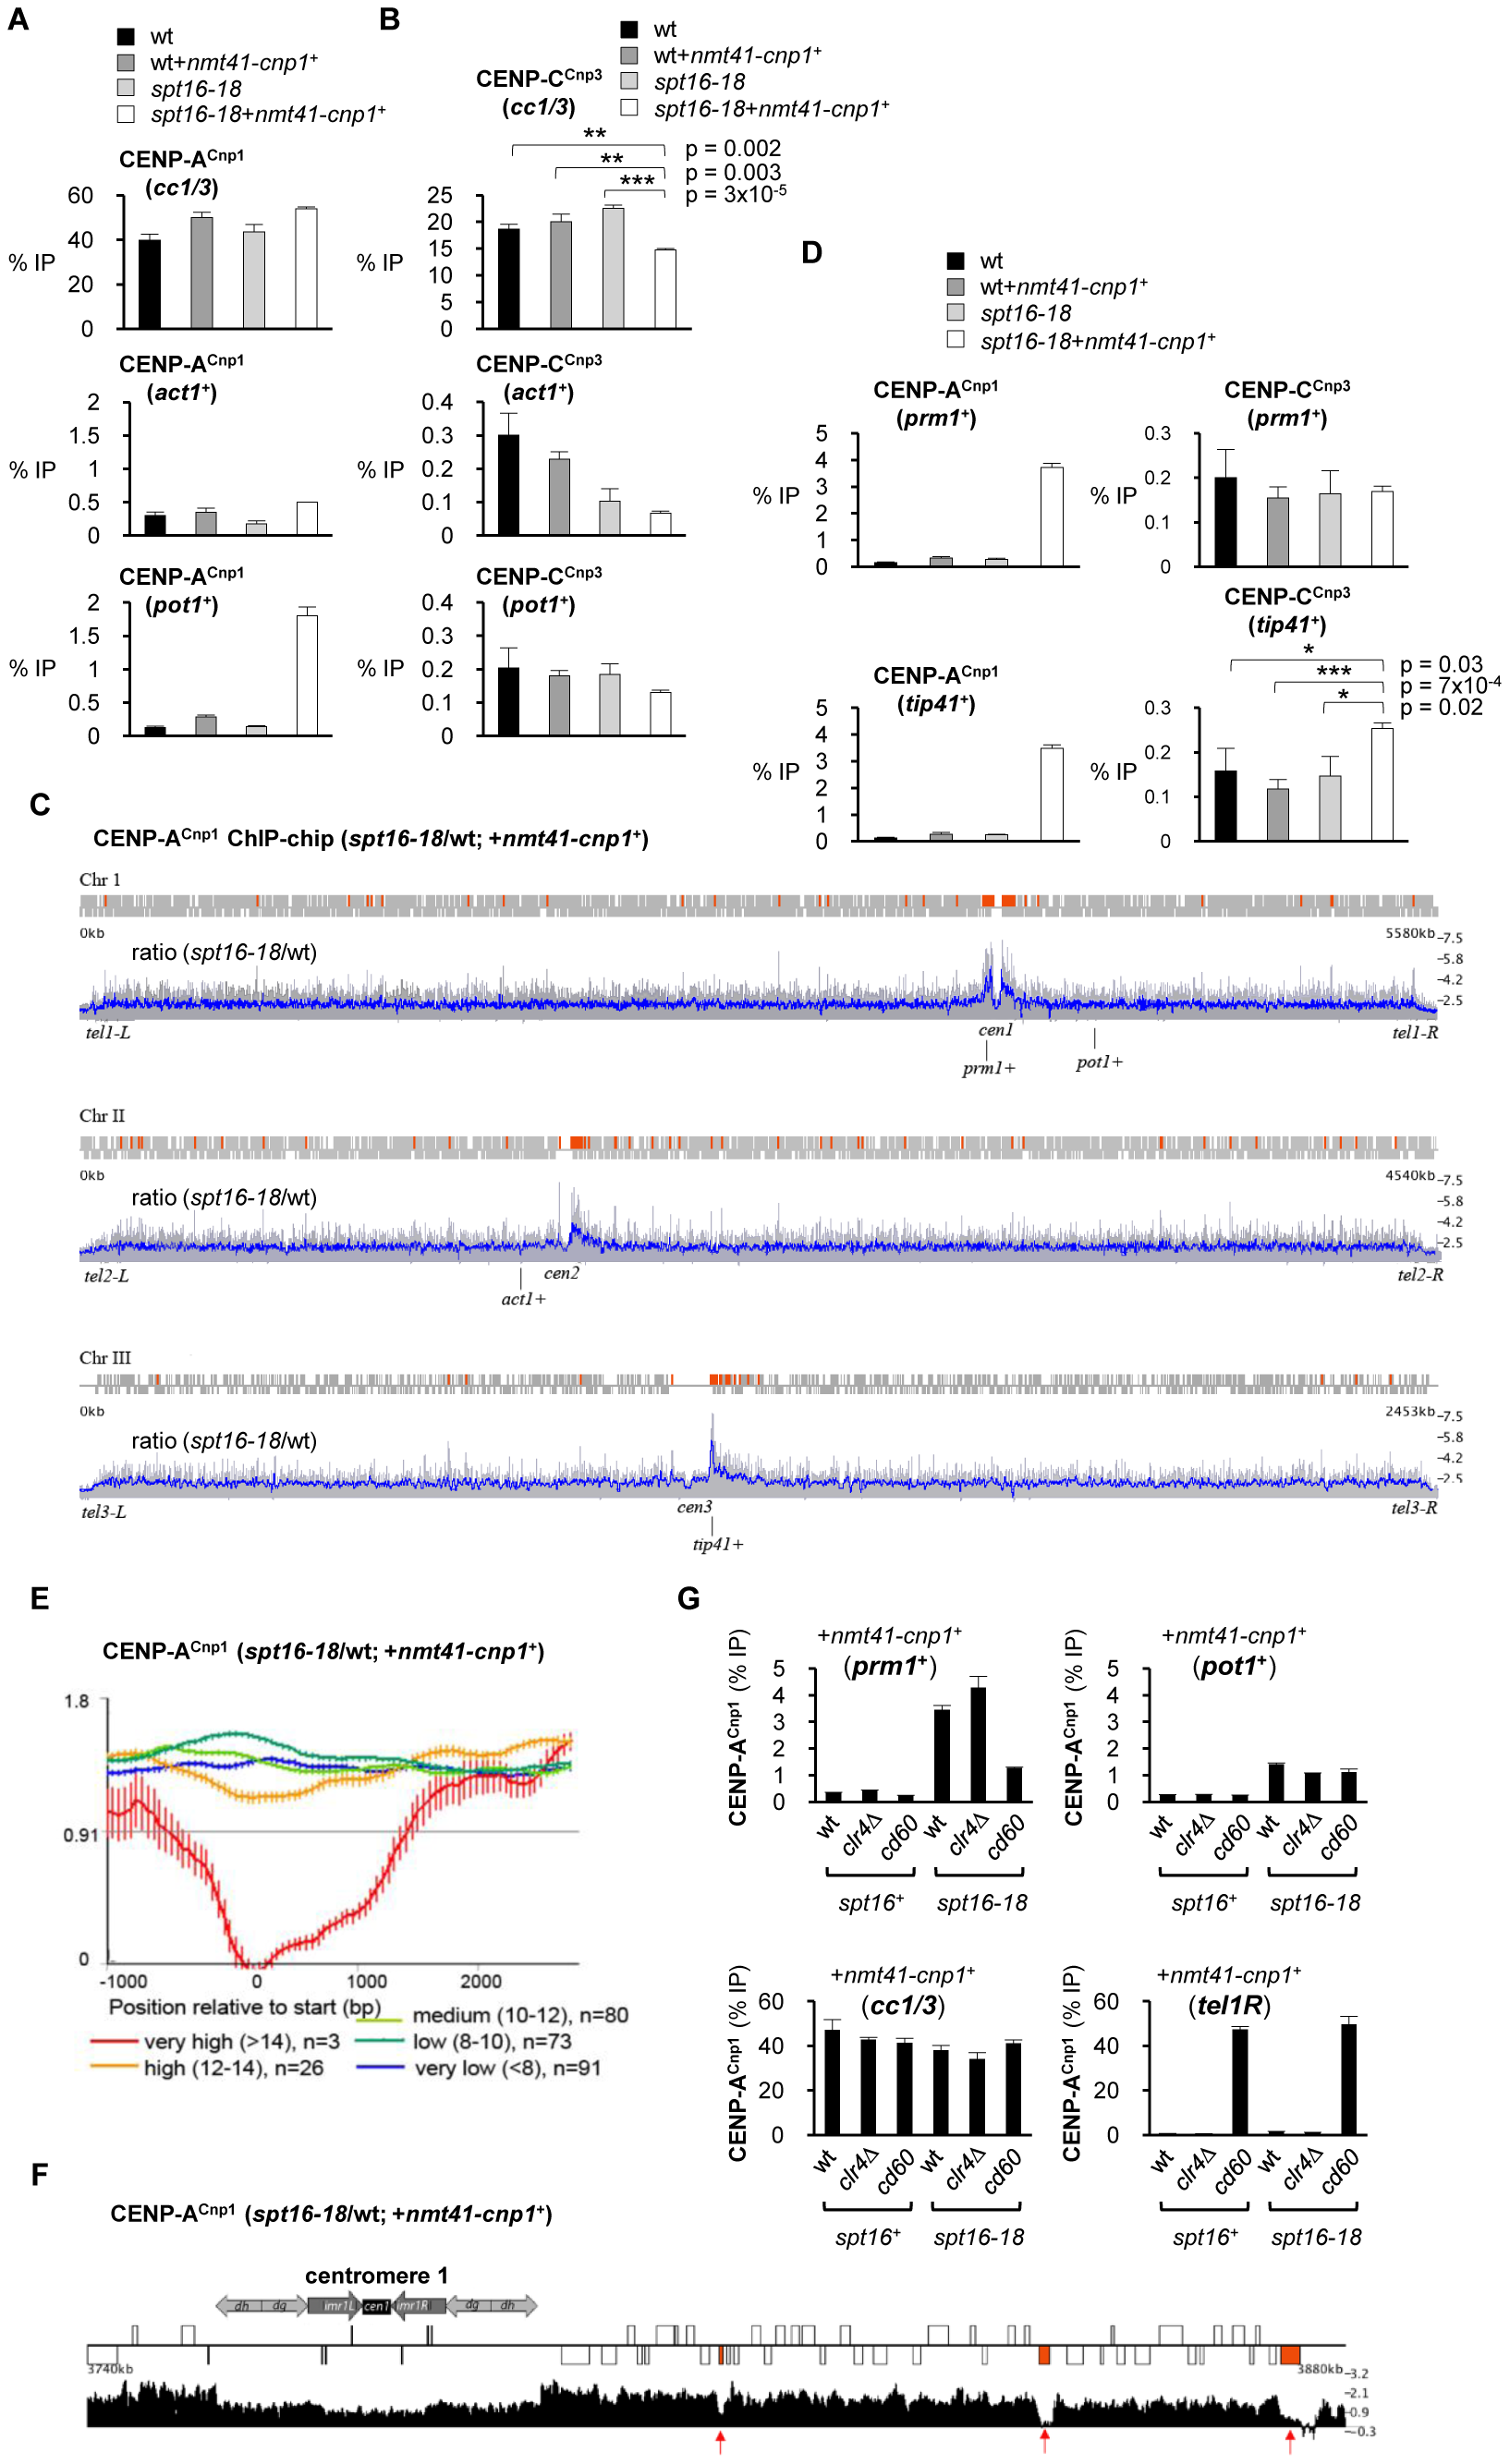 Spt16 prevents promiscuous incorporation of CENP-A<sup>Cnp1</sup>.